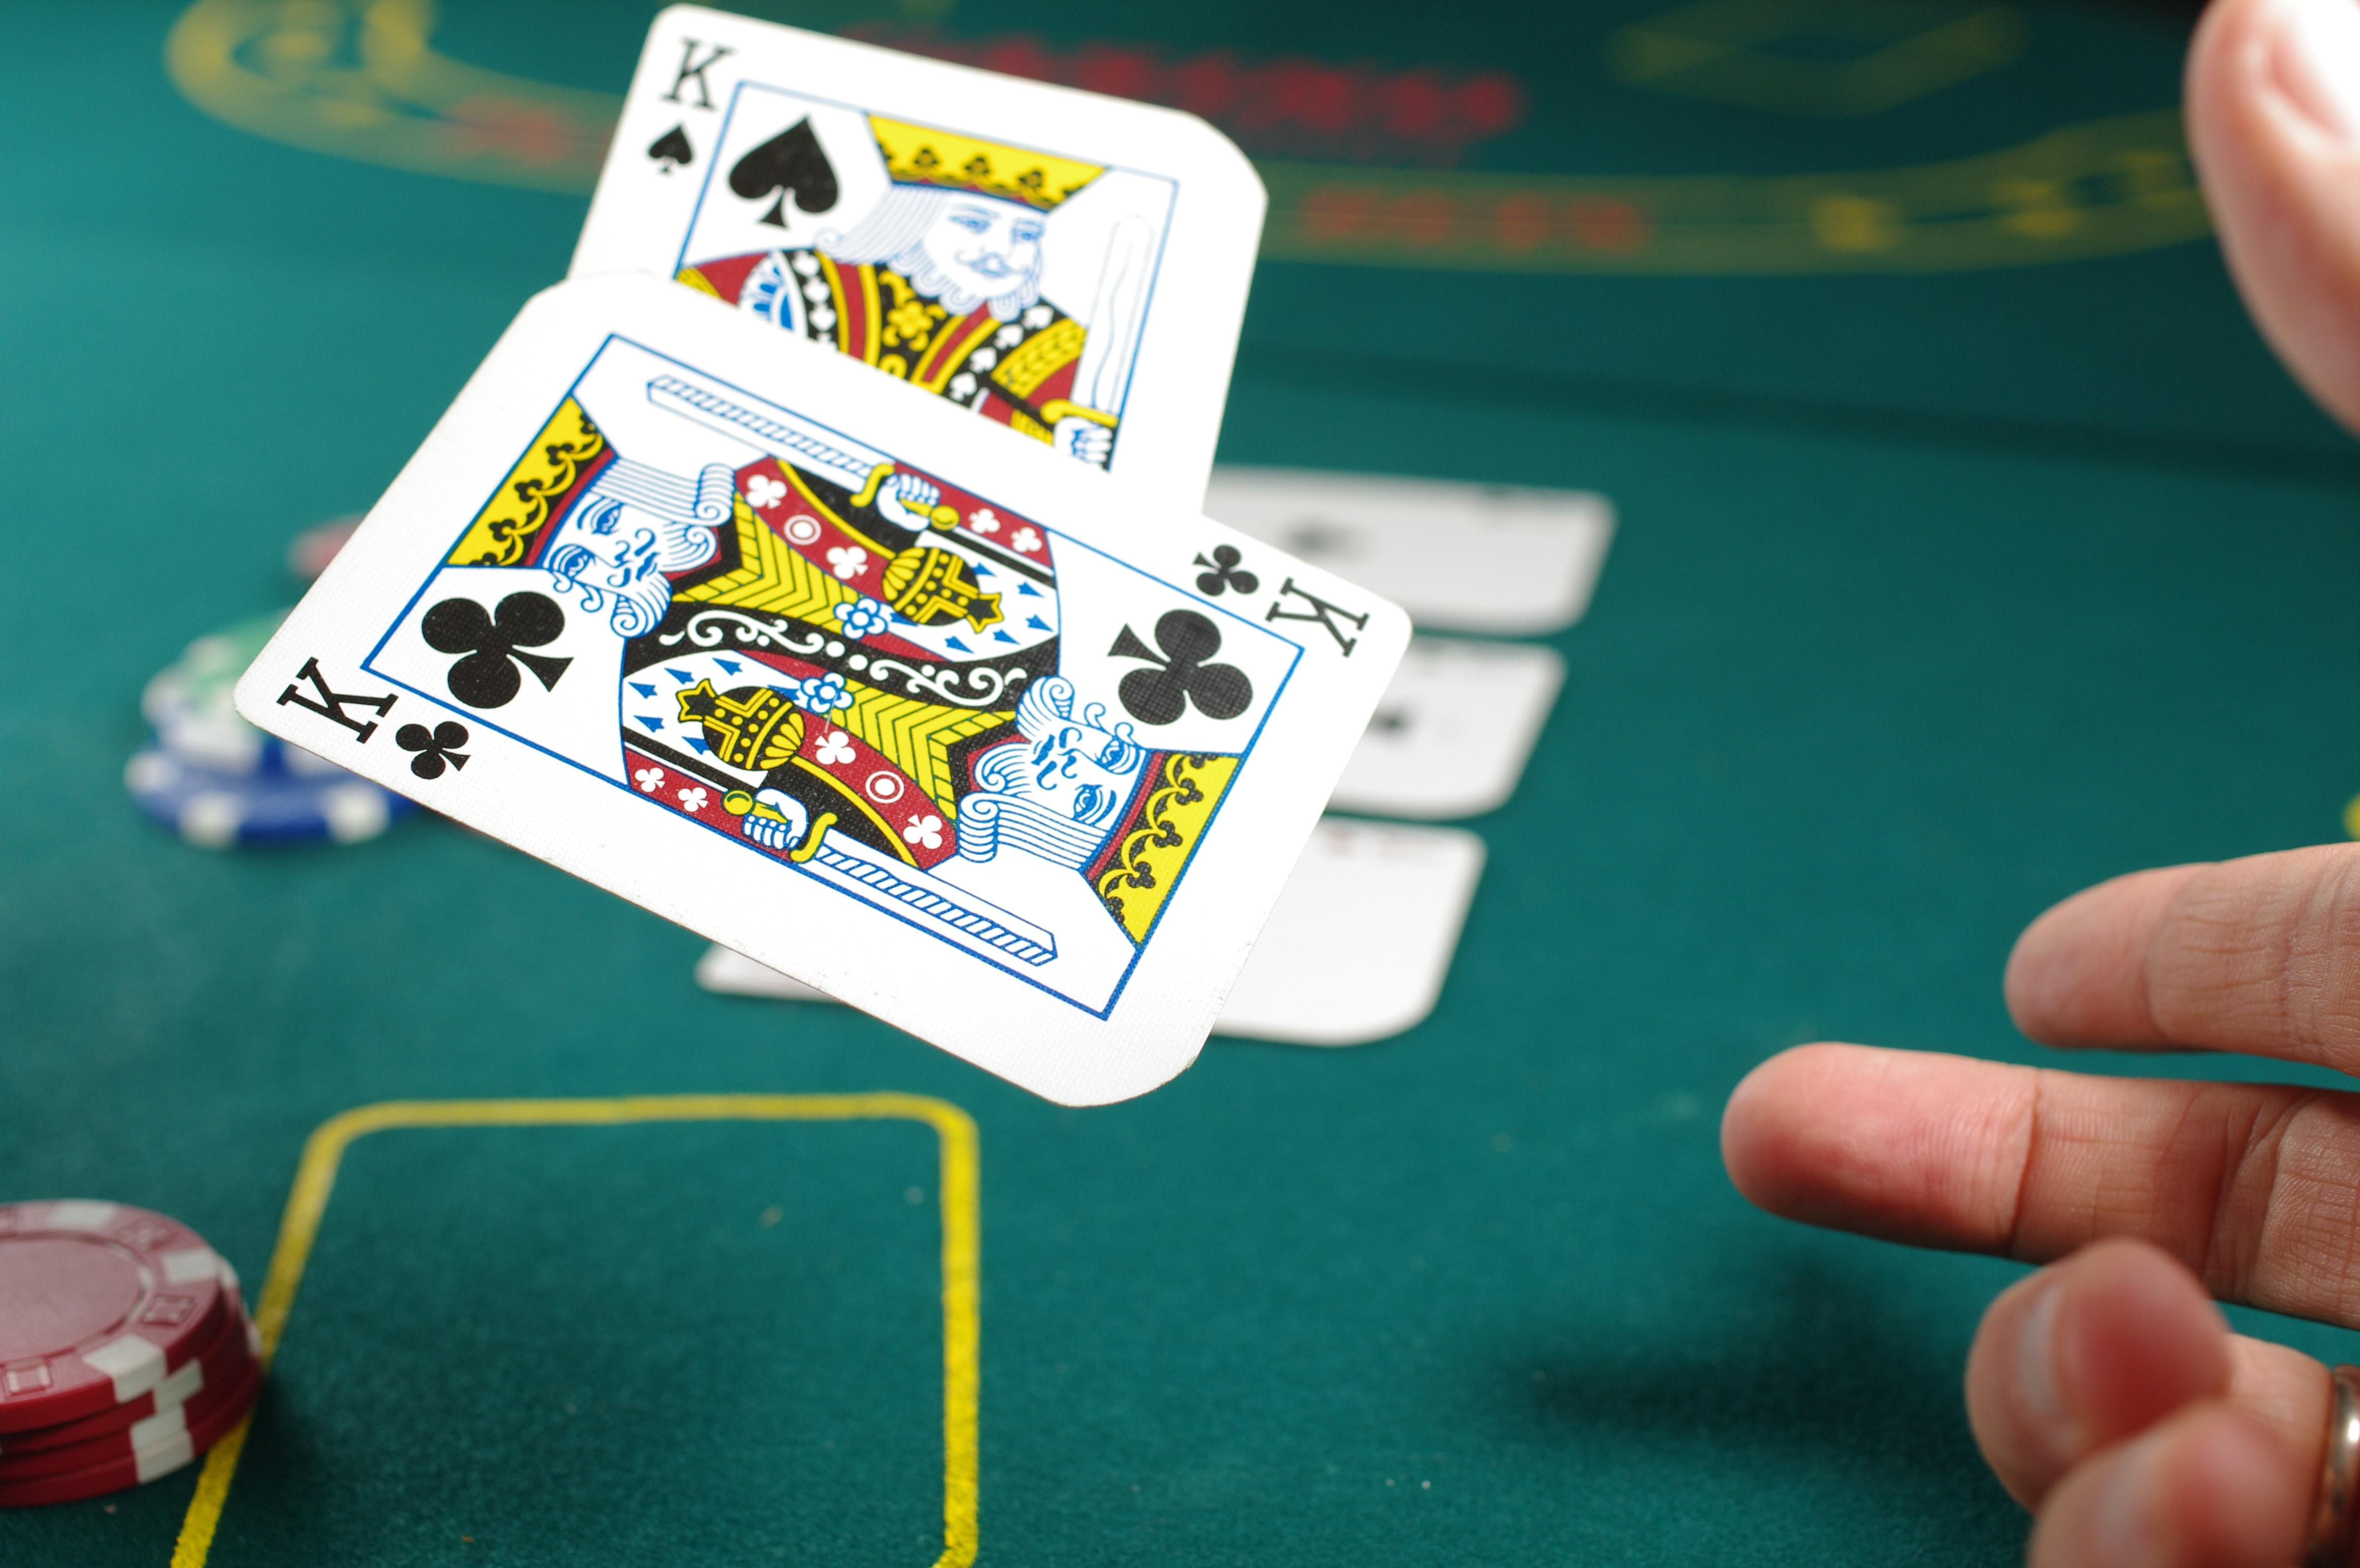 Texas lawmaker proposes casinos to subsidize wind insurance